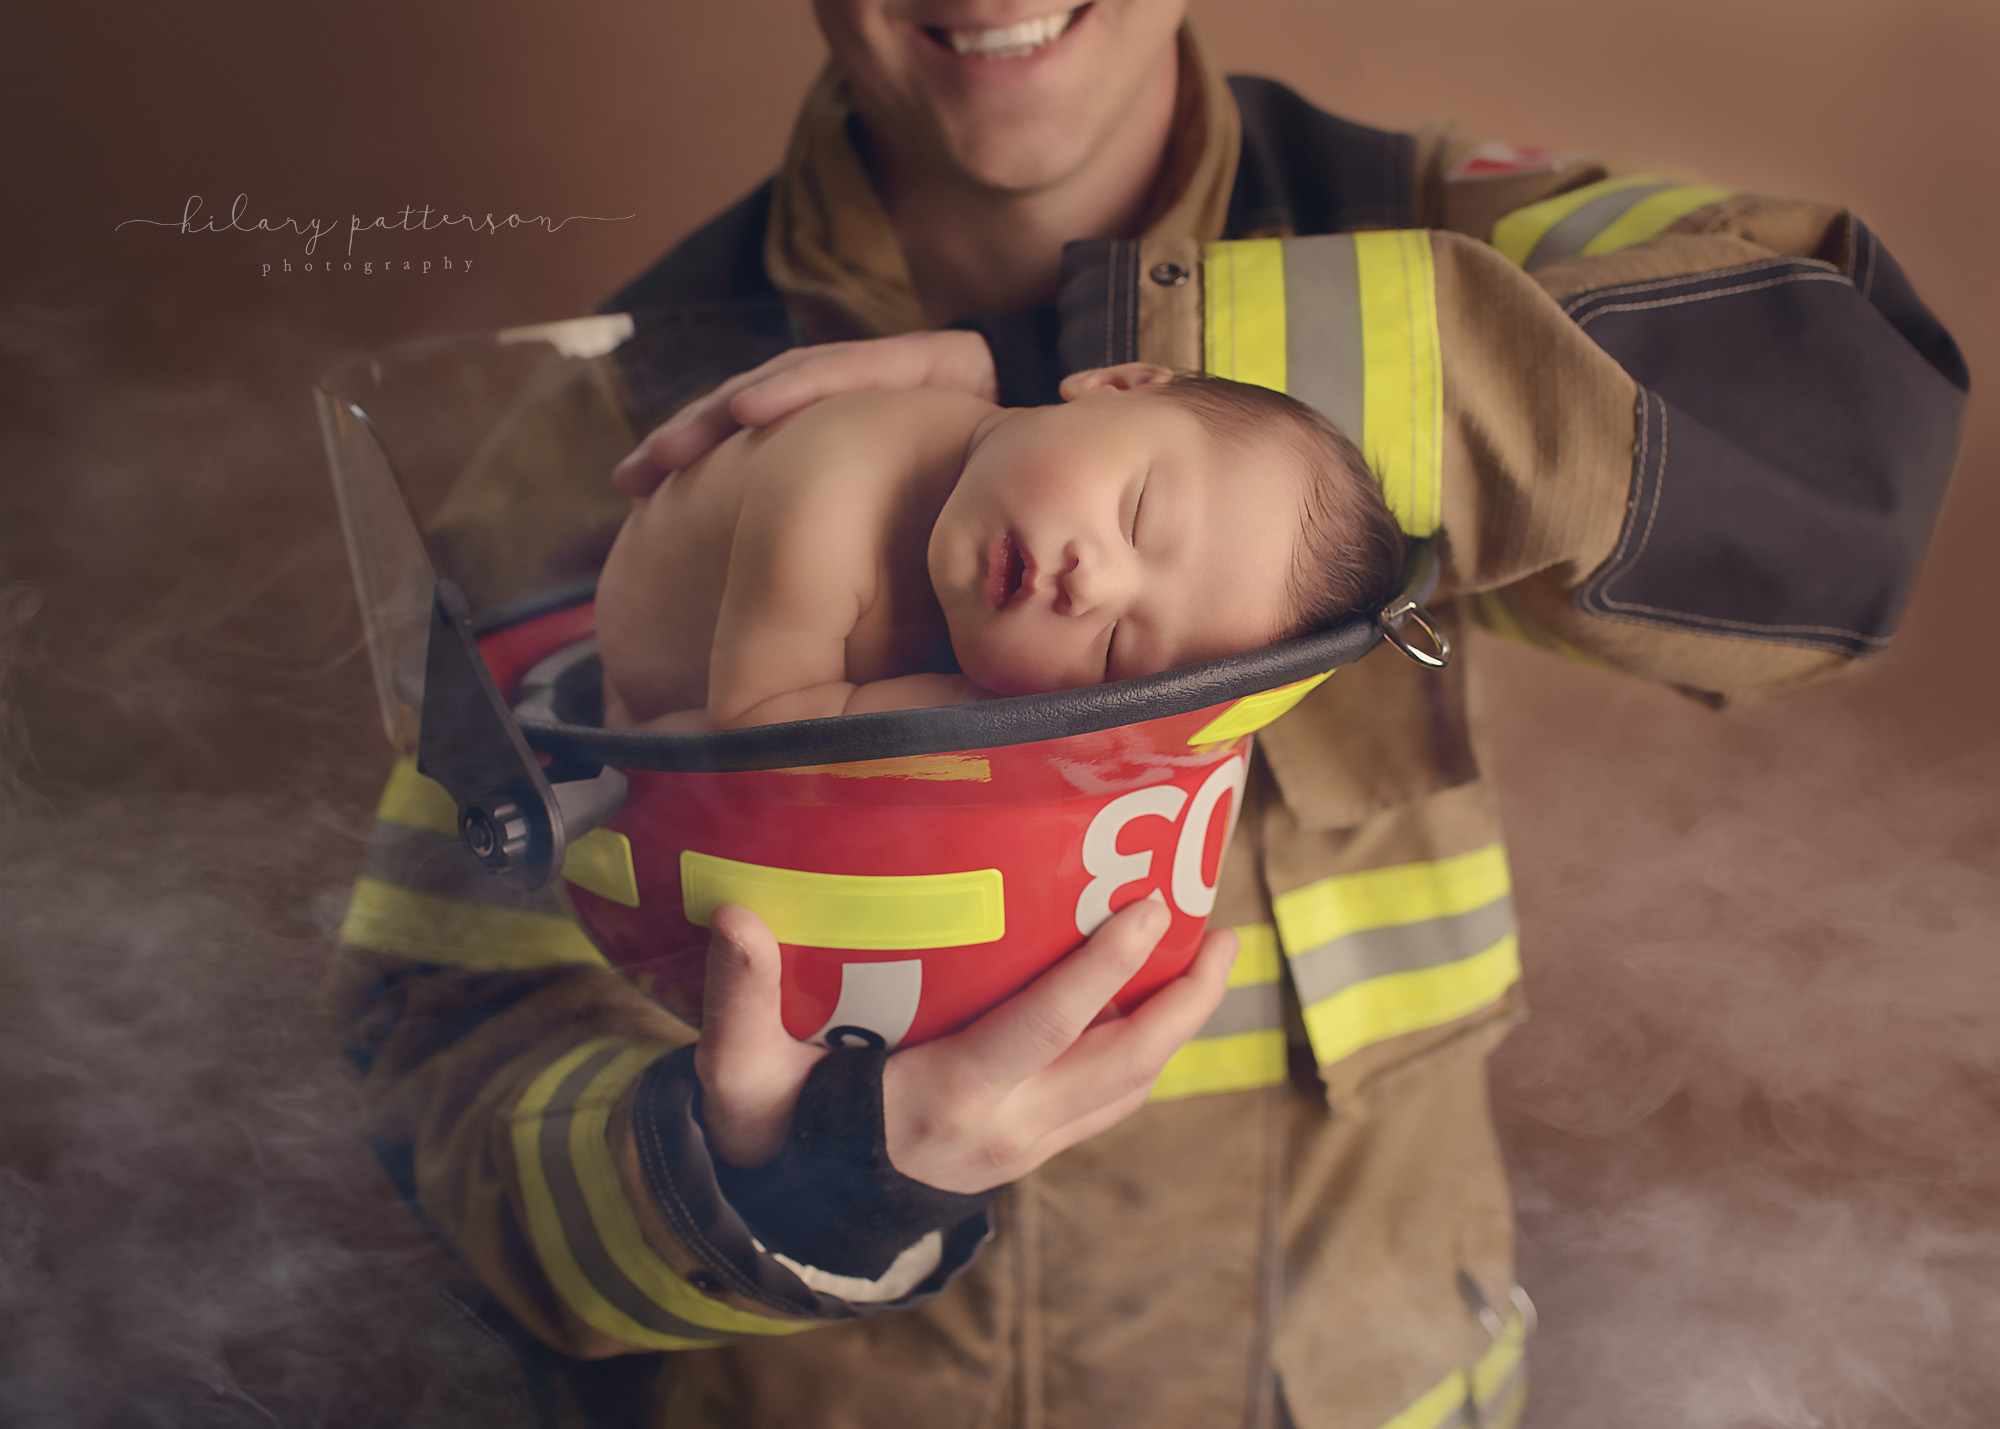 newborn-girl-firefighter-helmet-hope-photographer-fraser-valley-vancouver-port-moody-best-portrait-father-and-daughter